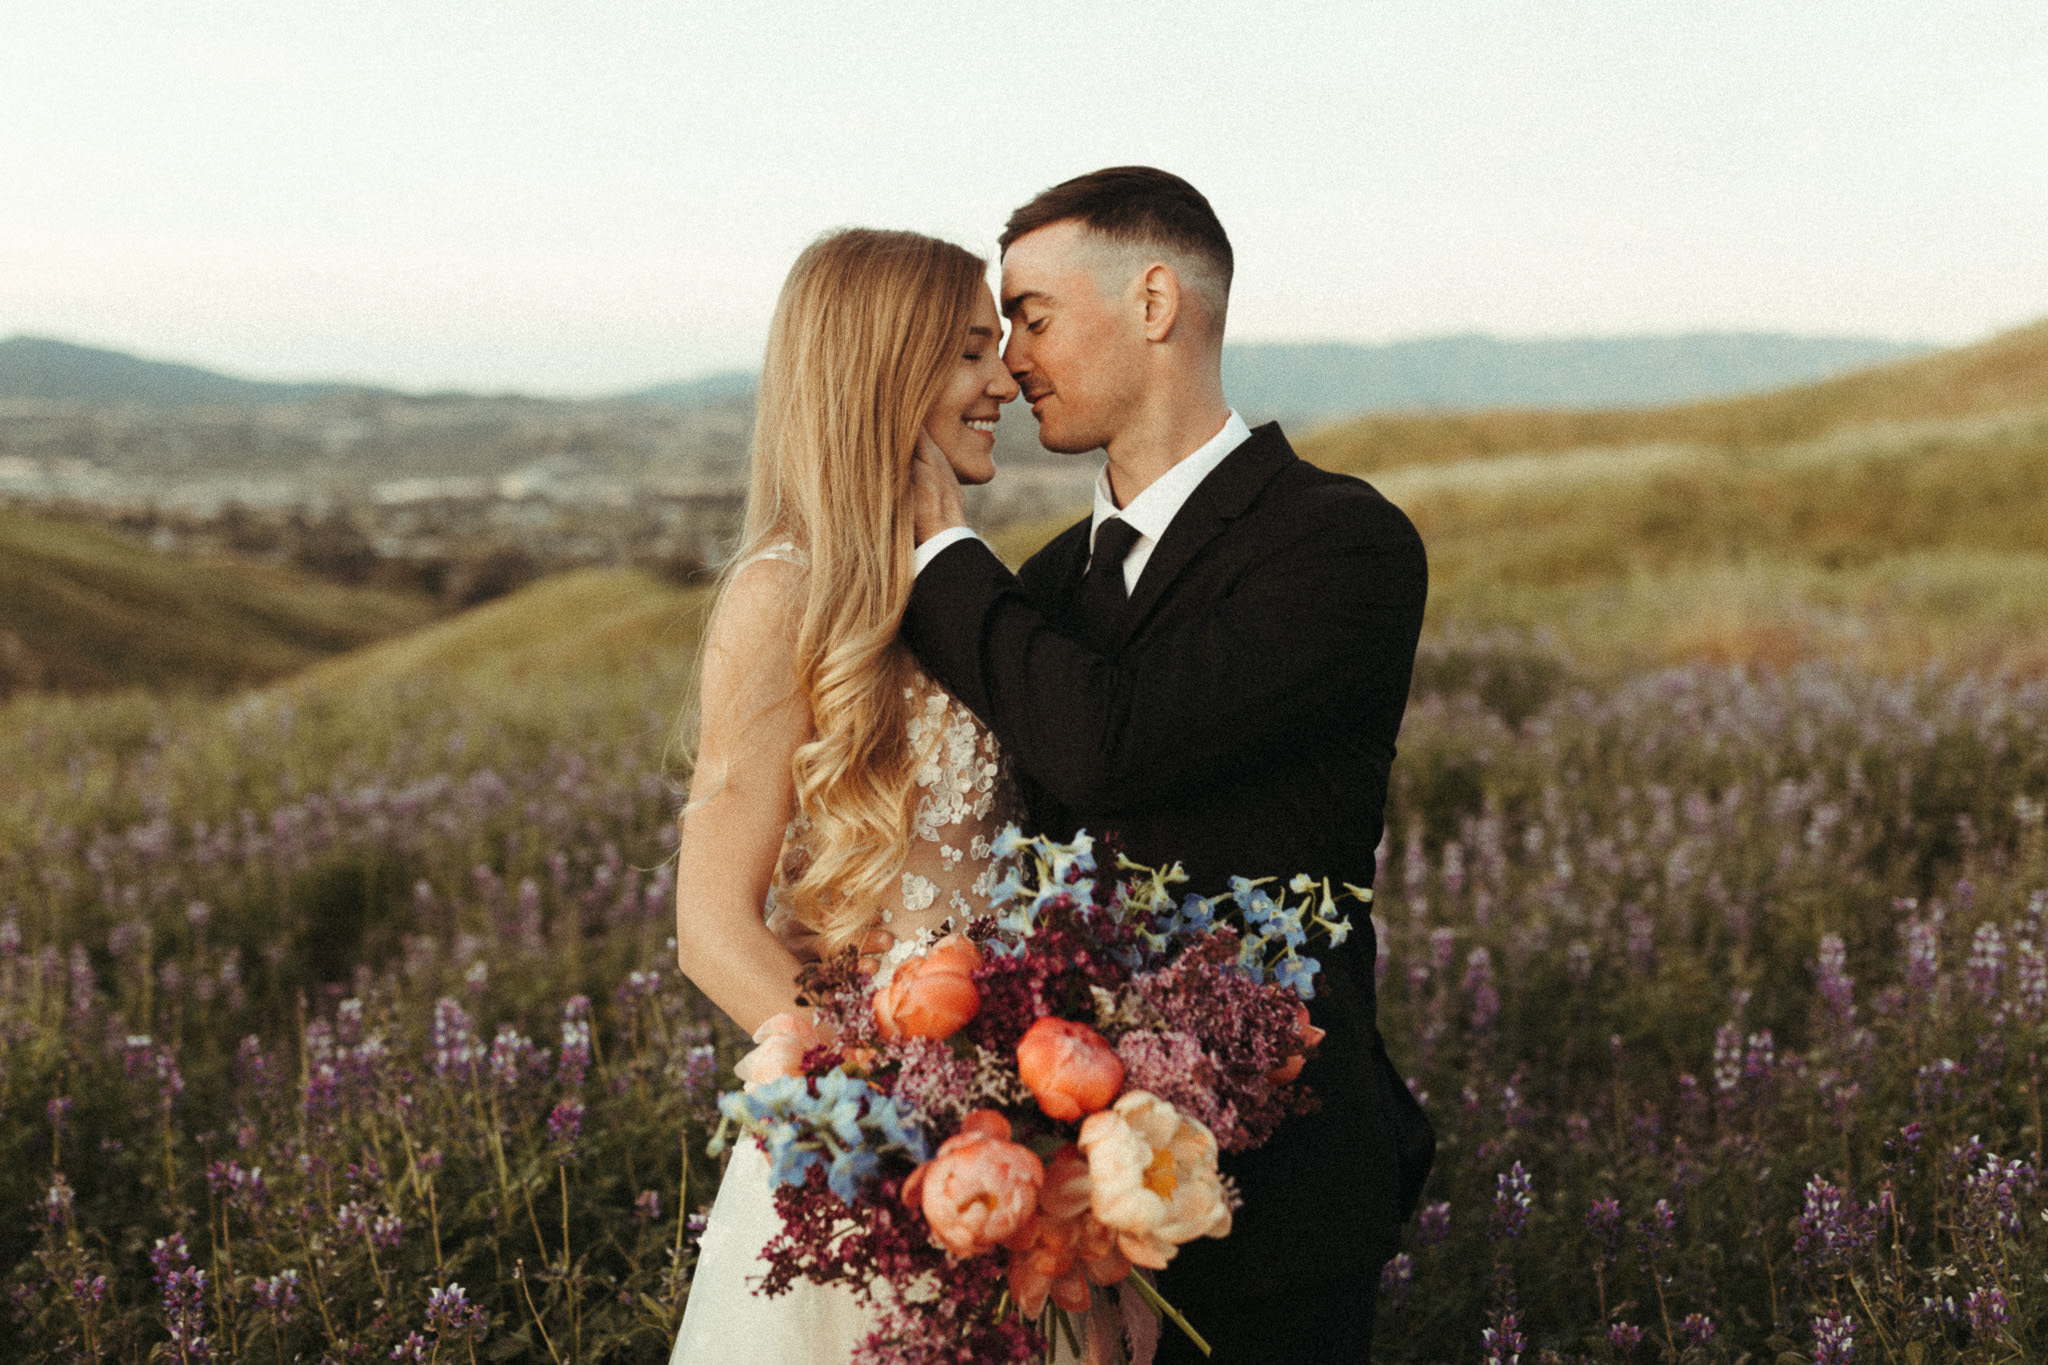 gorgeous bride and groom celebrating their wedding elopement at sunrise in some lupine fields with a beautiful romantic floral bouquet